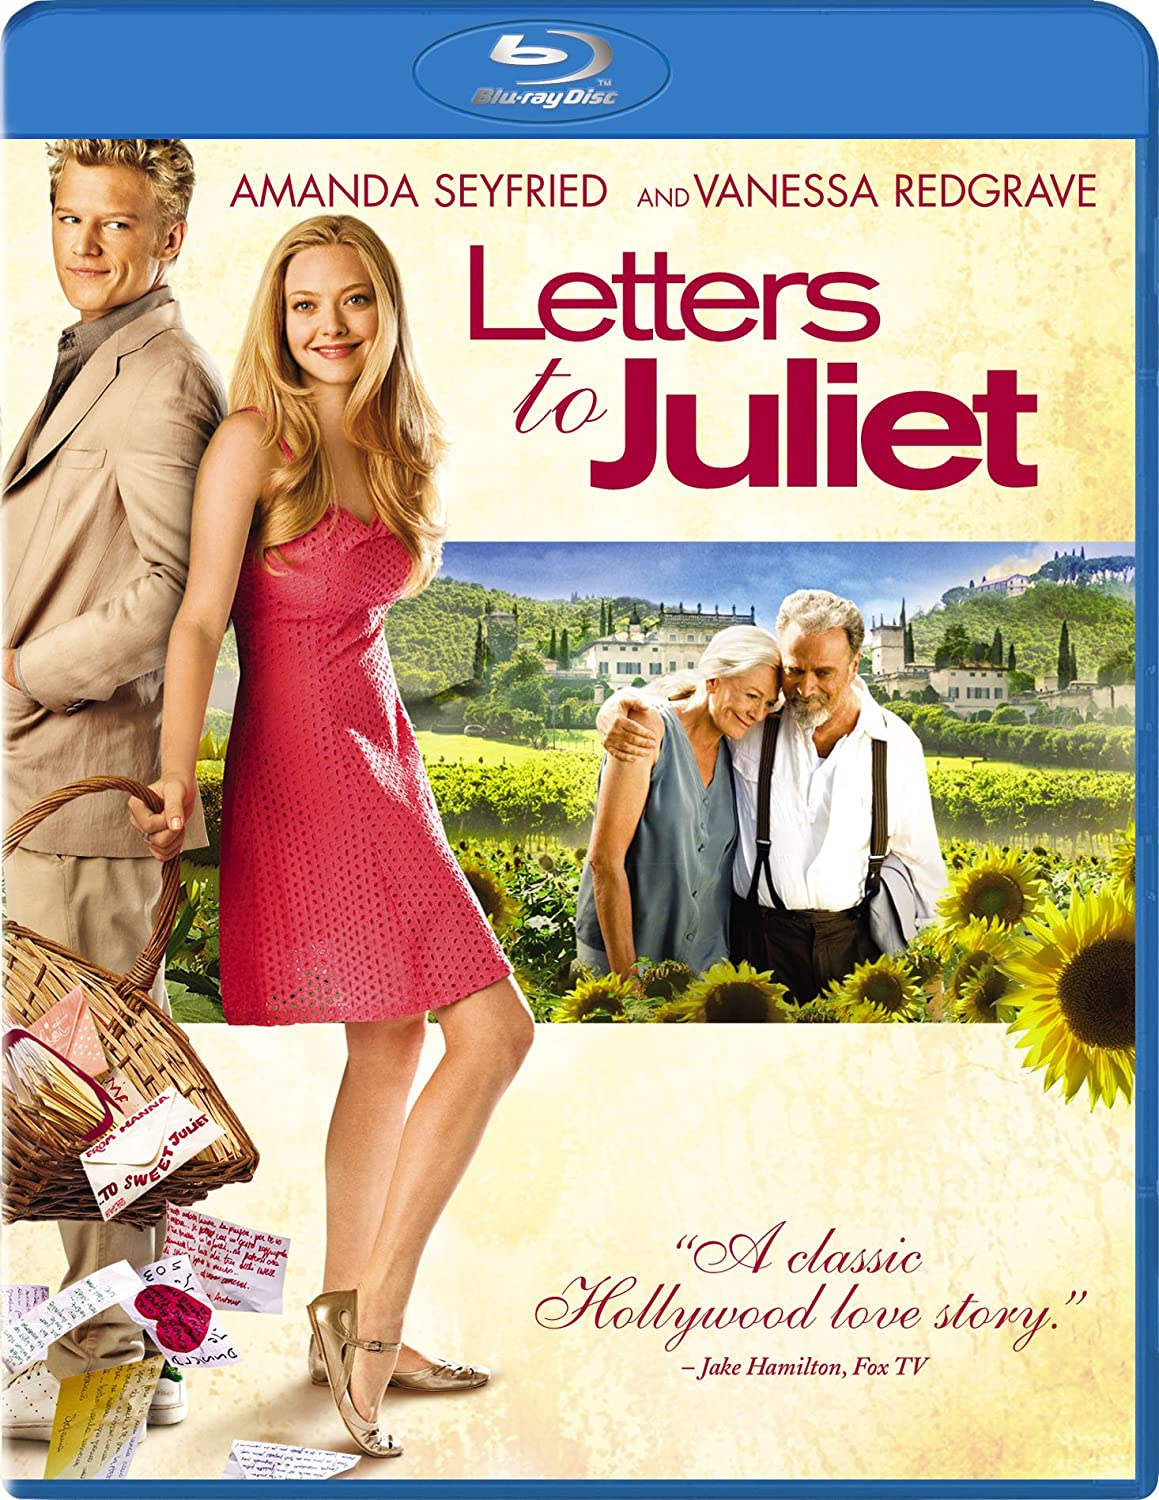 letters to juliet Find great deals on ebay for letters to juliet dvd and letters to juliet shop with confidence.